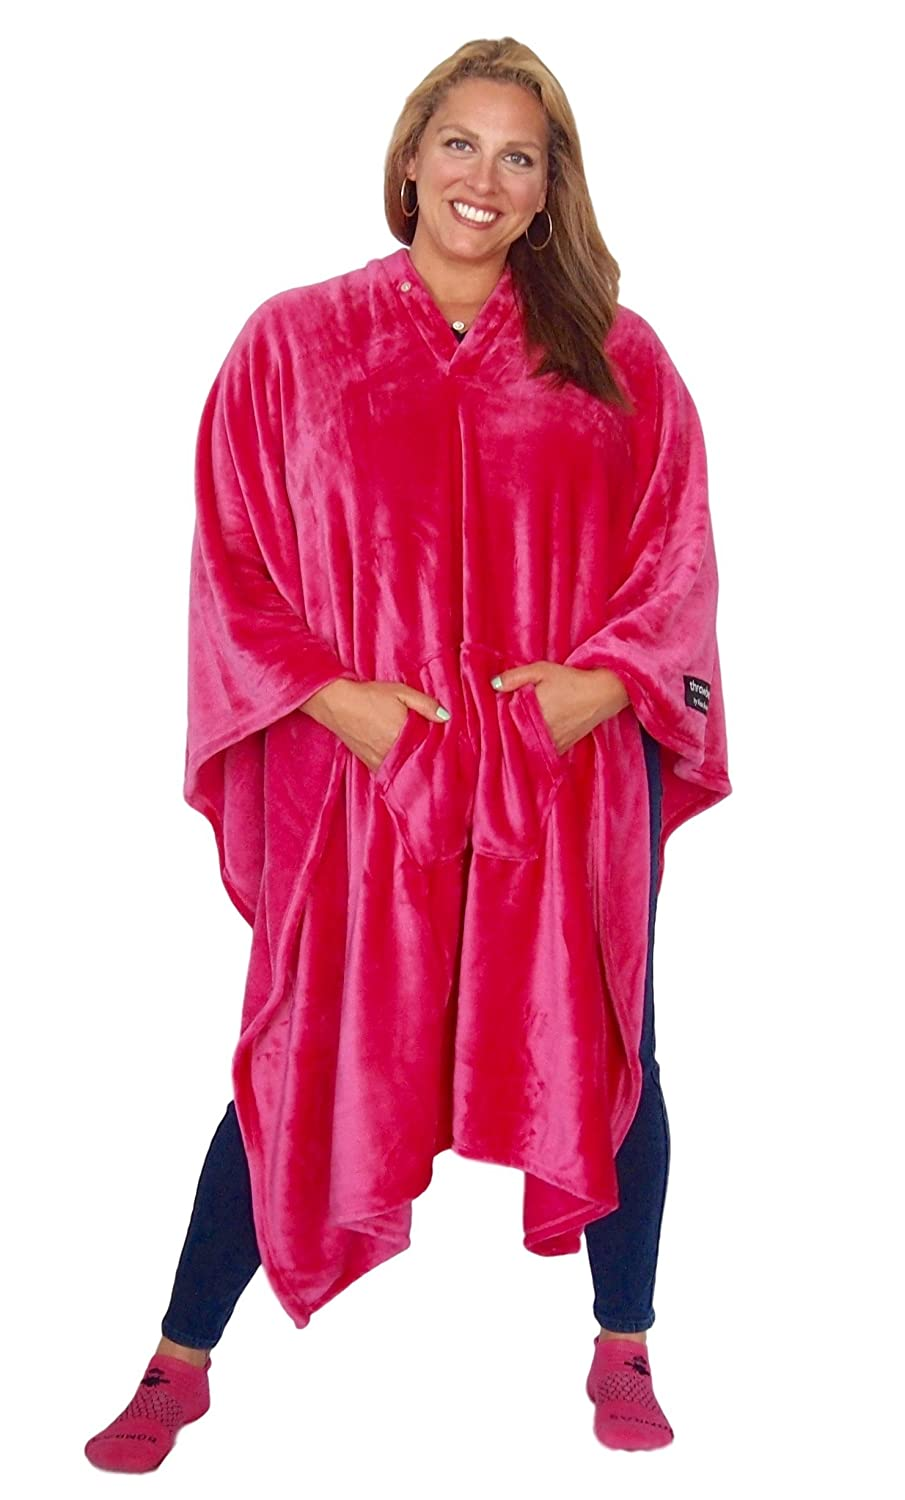 throwbee Original Blanket-Poncho Pink (Yay! NO Sleeves) Wearable Throw The Most Comfortable and Softest Ever Indoors or Outdoors - Men Women Kids Kona Benellie throwbee PINK